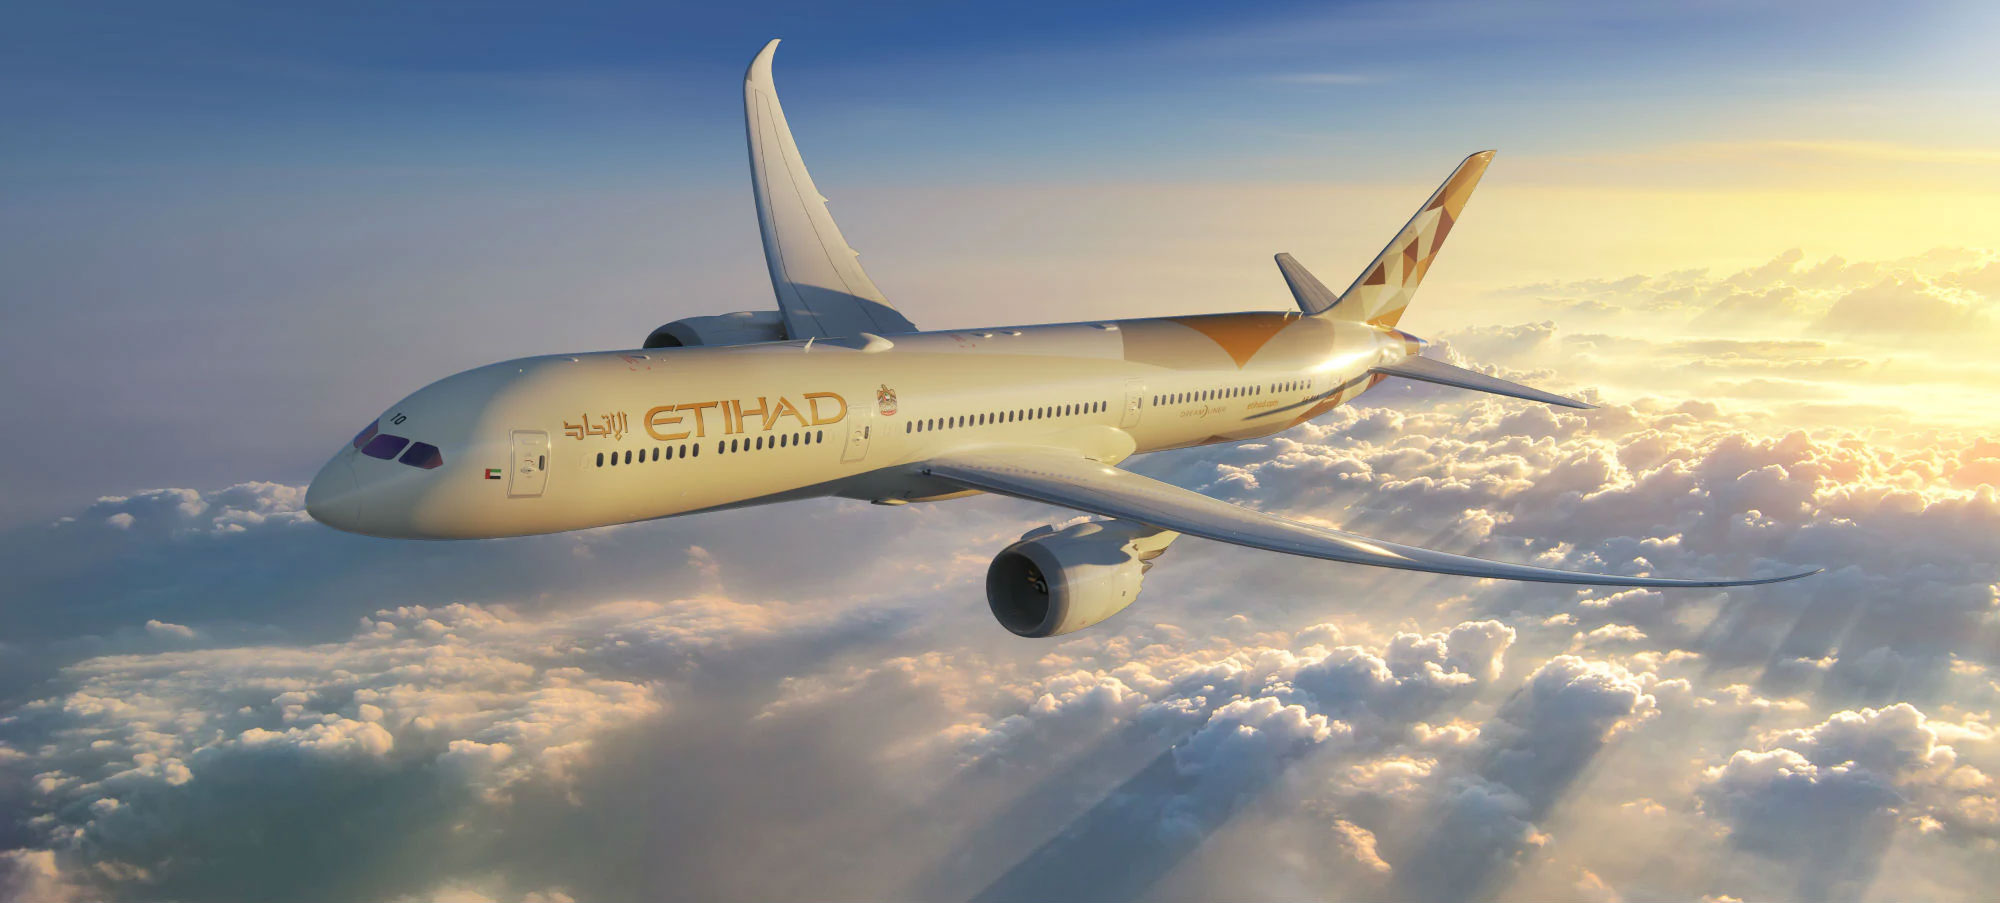 Etihad Airways Launches Charter Service